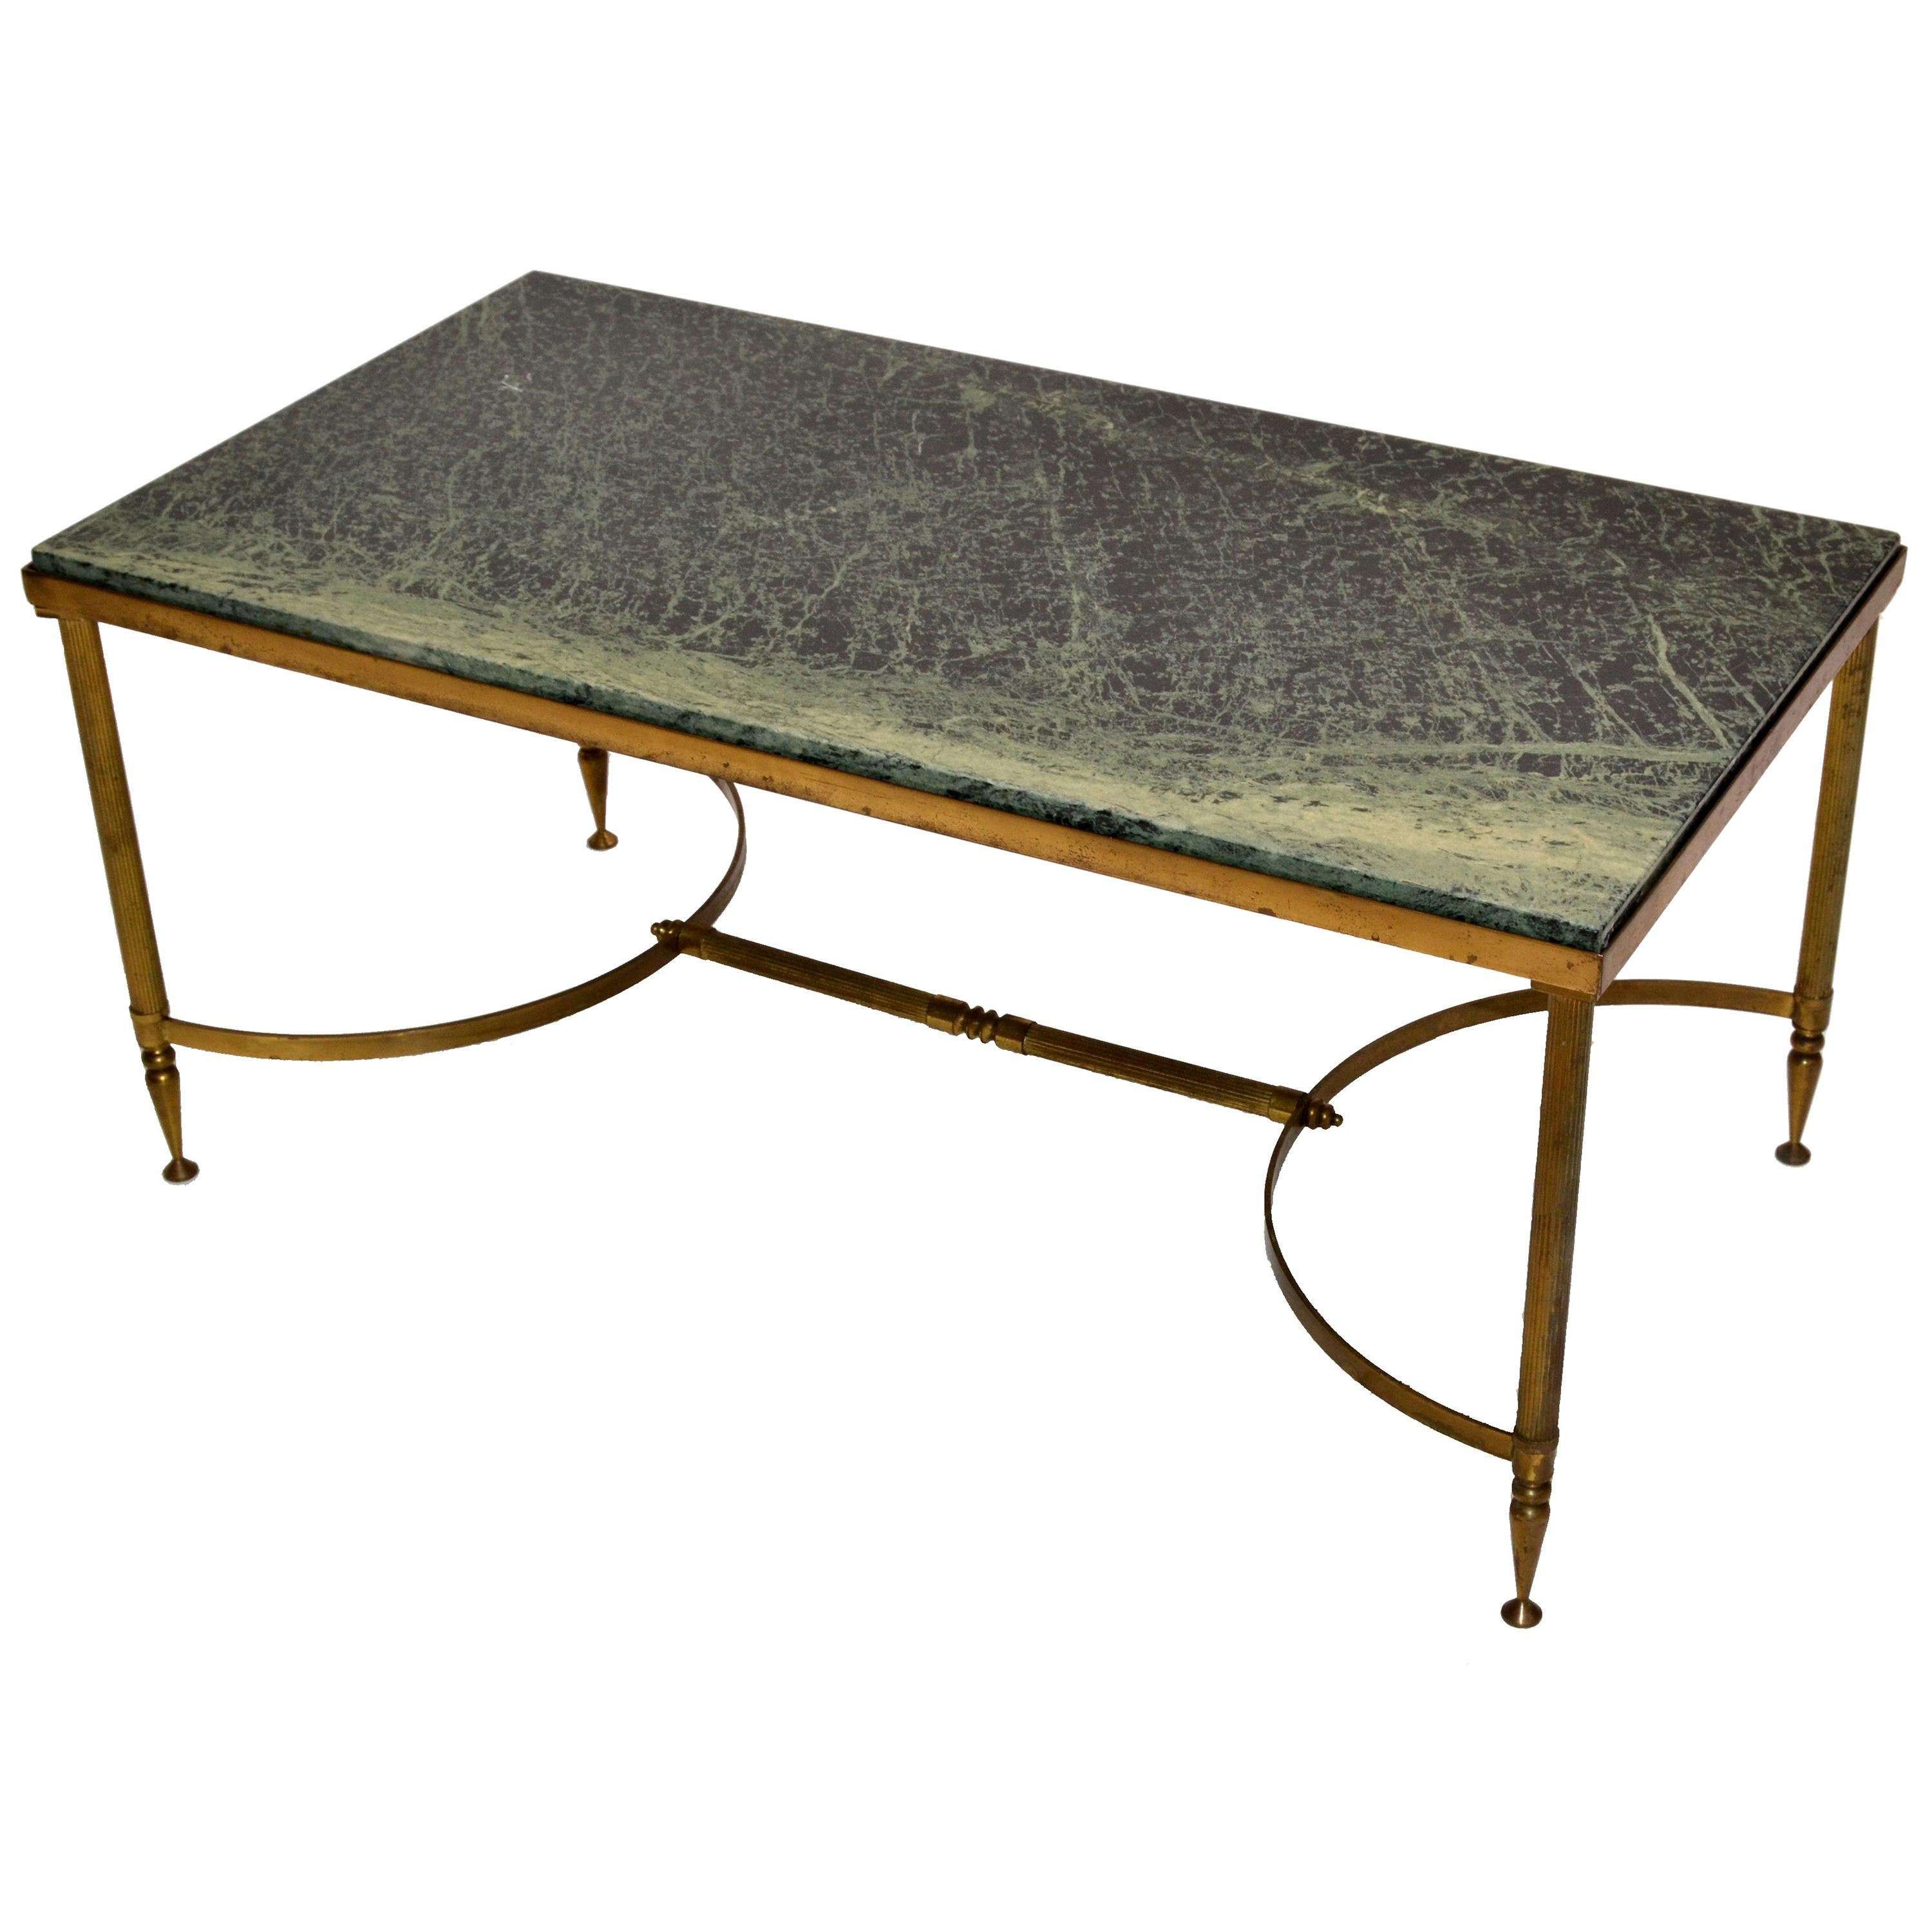 Maison Jansen Bronze Green Marble-Top Coffee Table French Neoclassical Late 1950